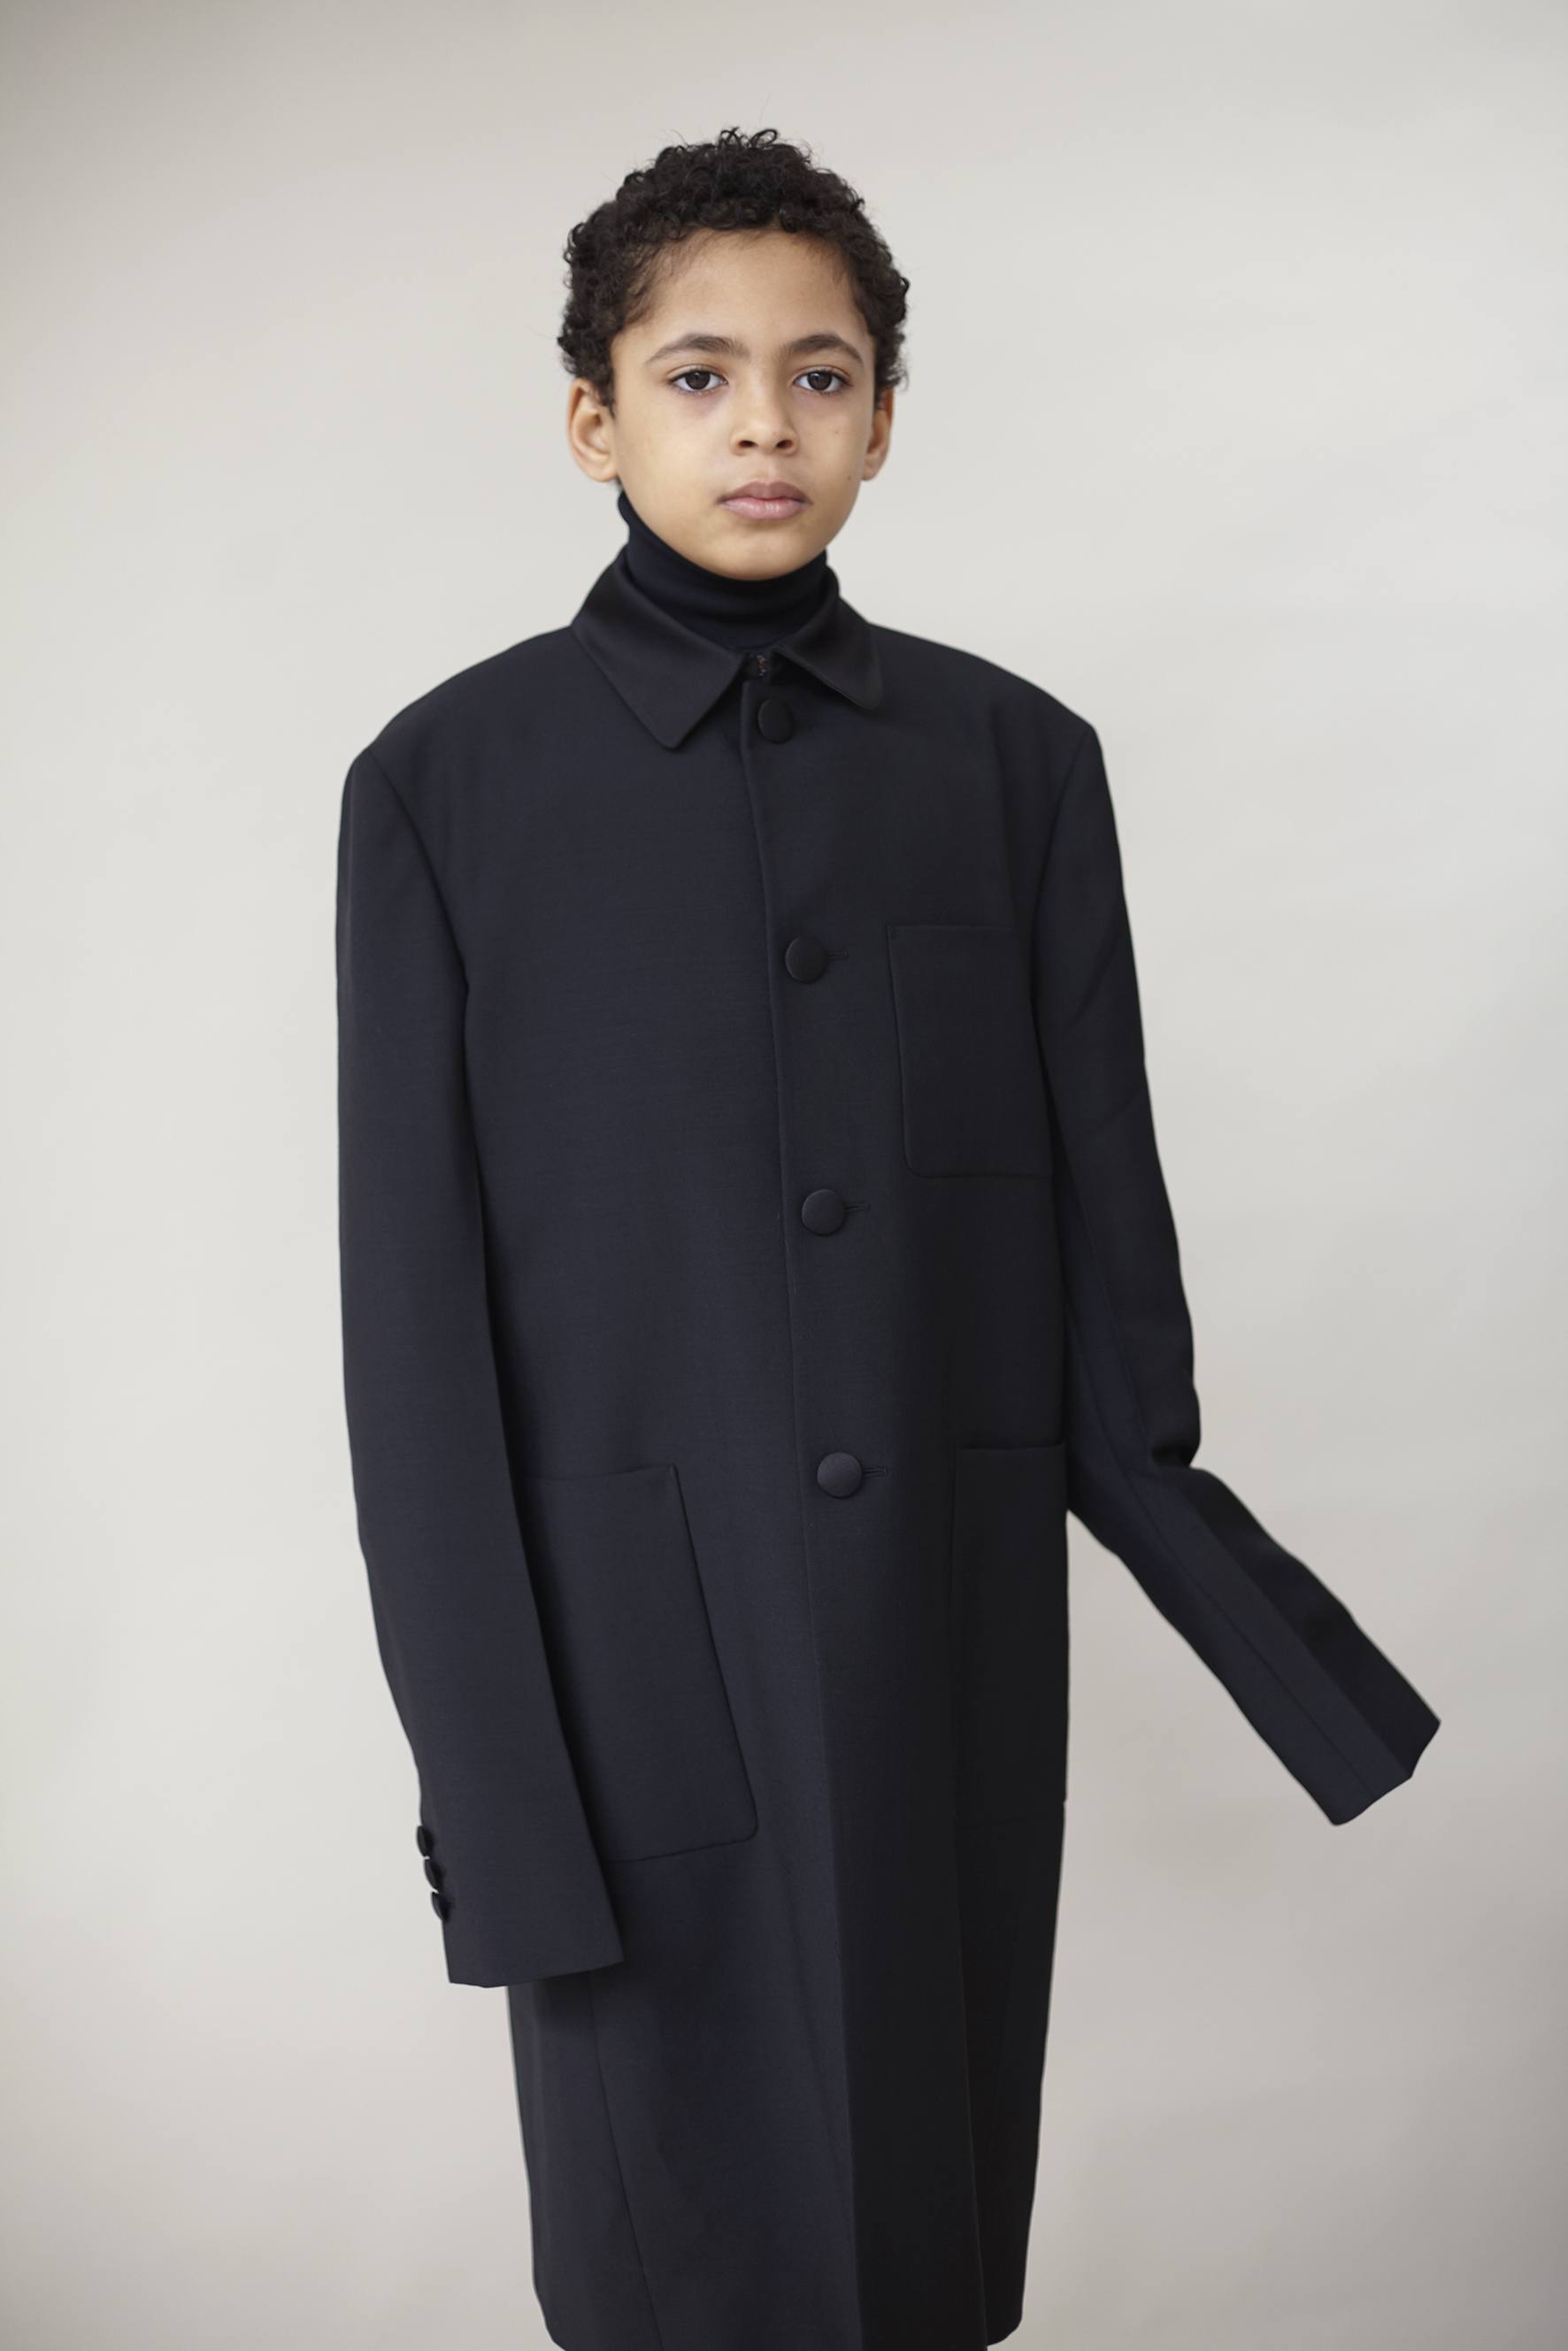 Black wool and satin coat and technical jersey turtleneck PRADA, white velvet tights WOLFORD.